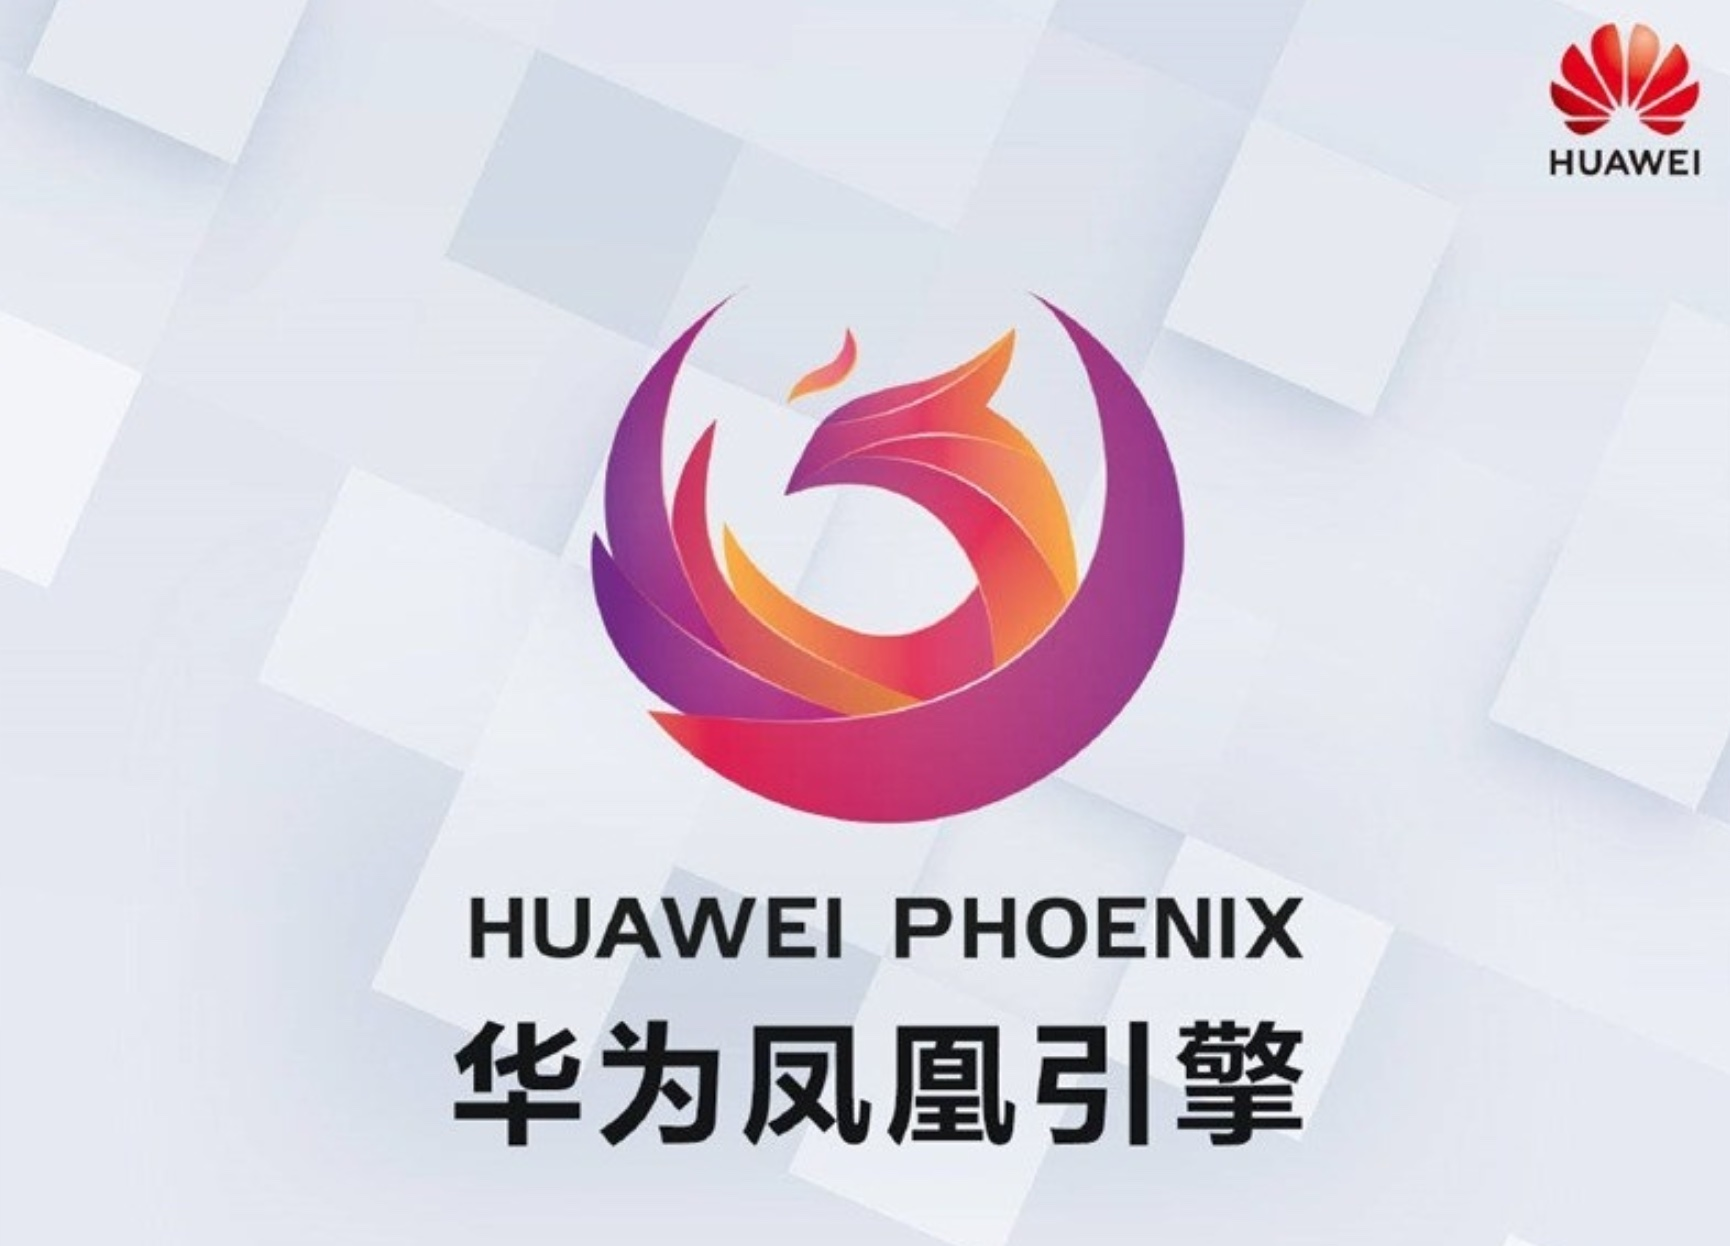 Huawei's Phoenix Engine boasts of PC-level mobile light tracing technology-CnTechPost